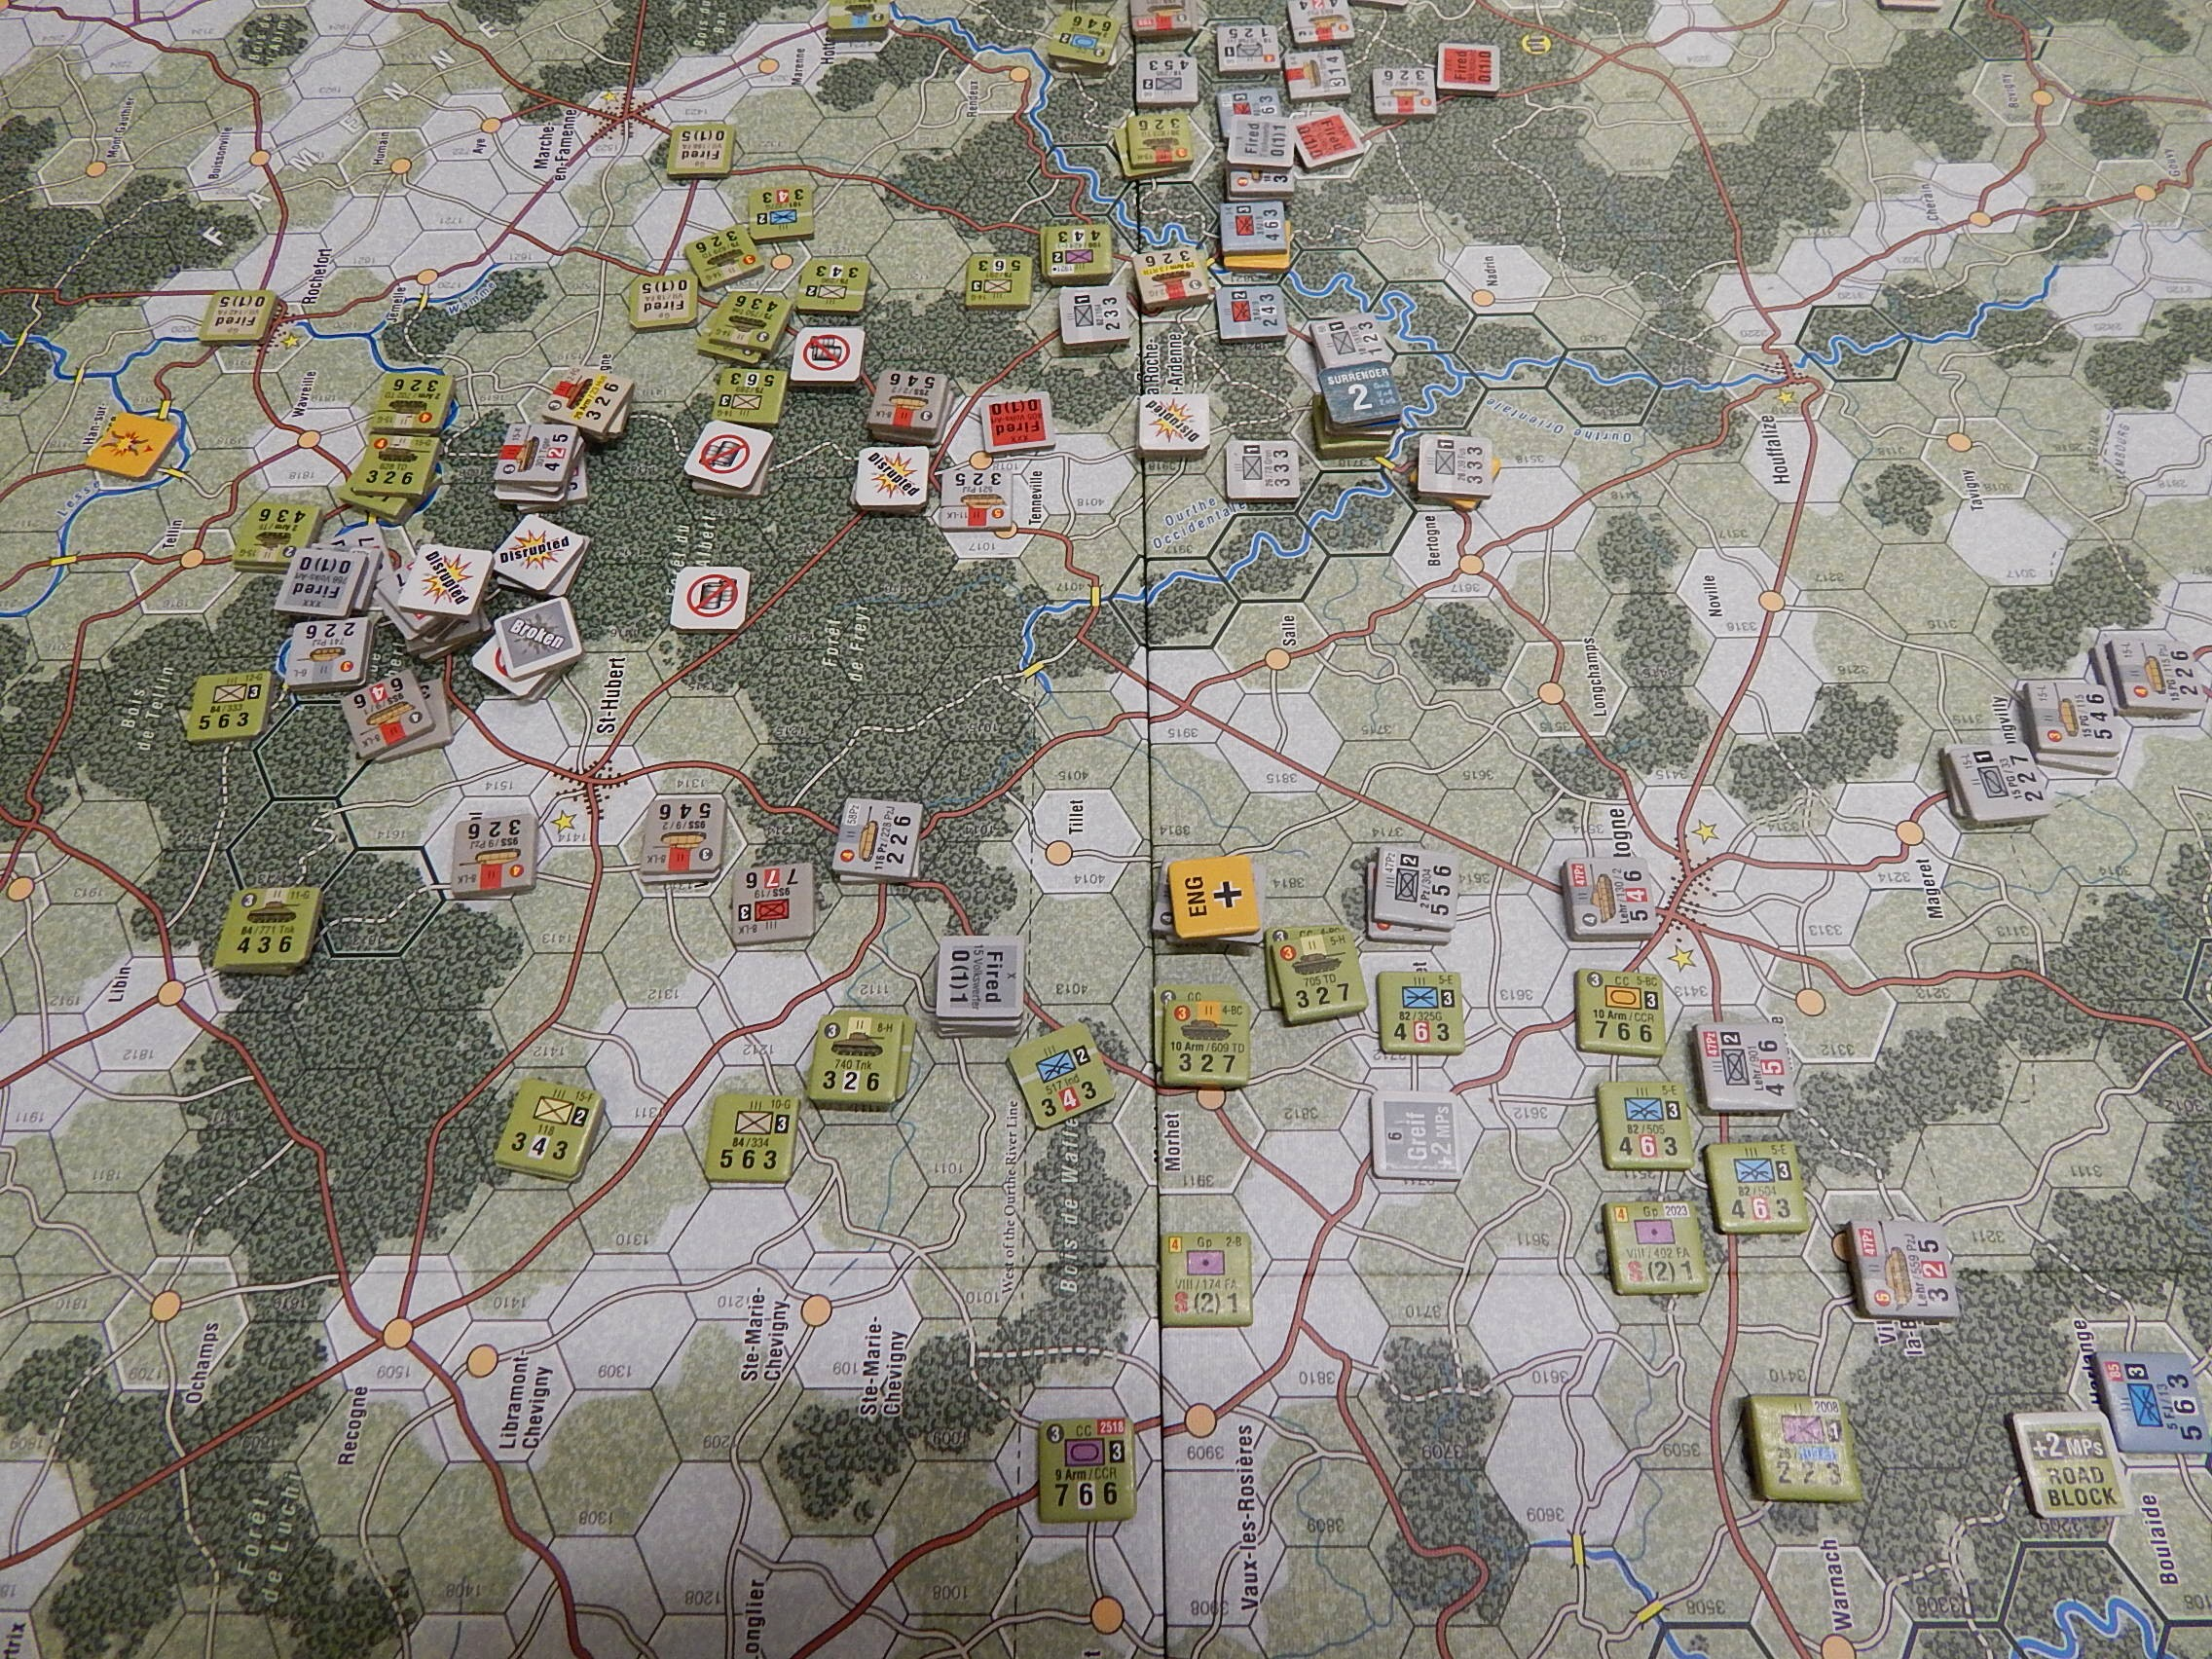 https://i.ibb.co/MZTcKf8/Ardennes-44-End-of-Play-2.jpg